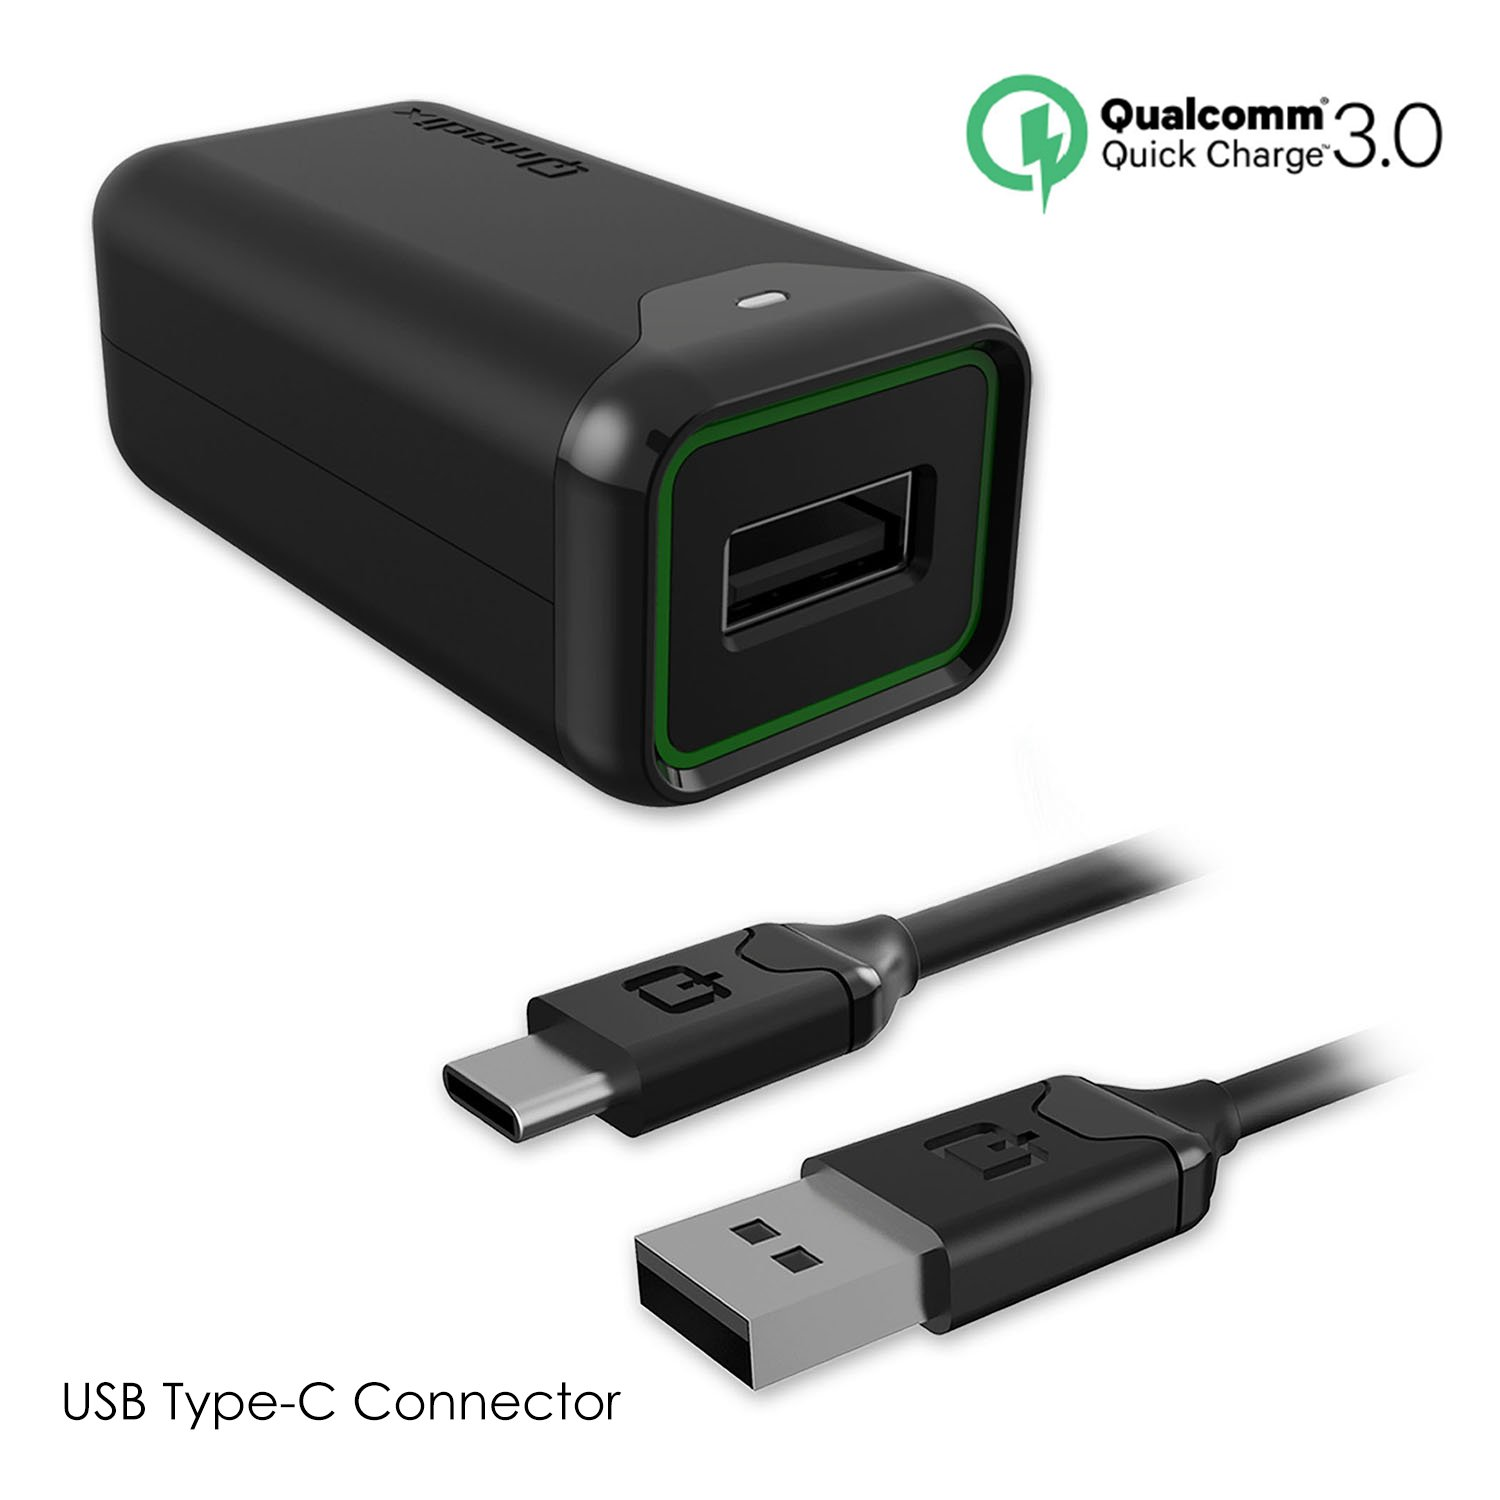 Qualcomm Quick Charge 3.0 - Charge Your Device Up To 38% More Effeciently - Samsung Adaptive Fast Charger (USB Type-C Travel Charger)